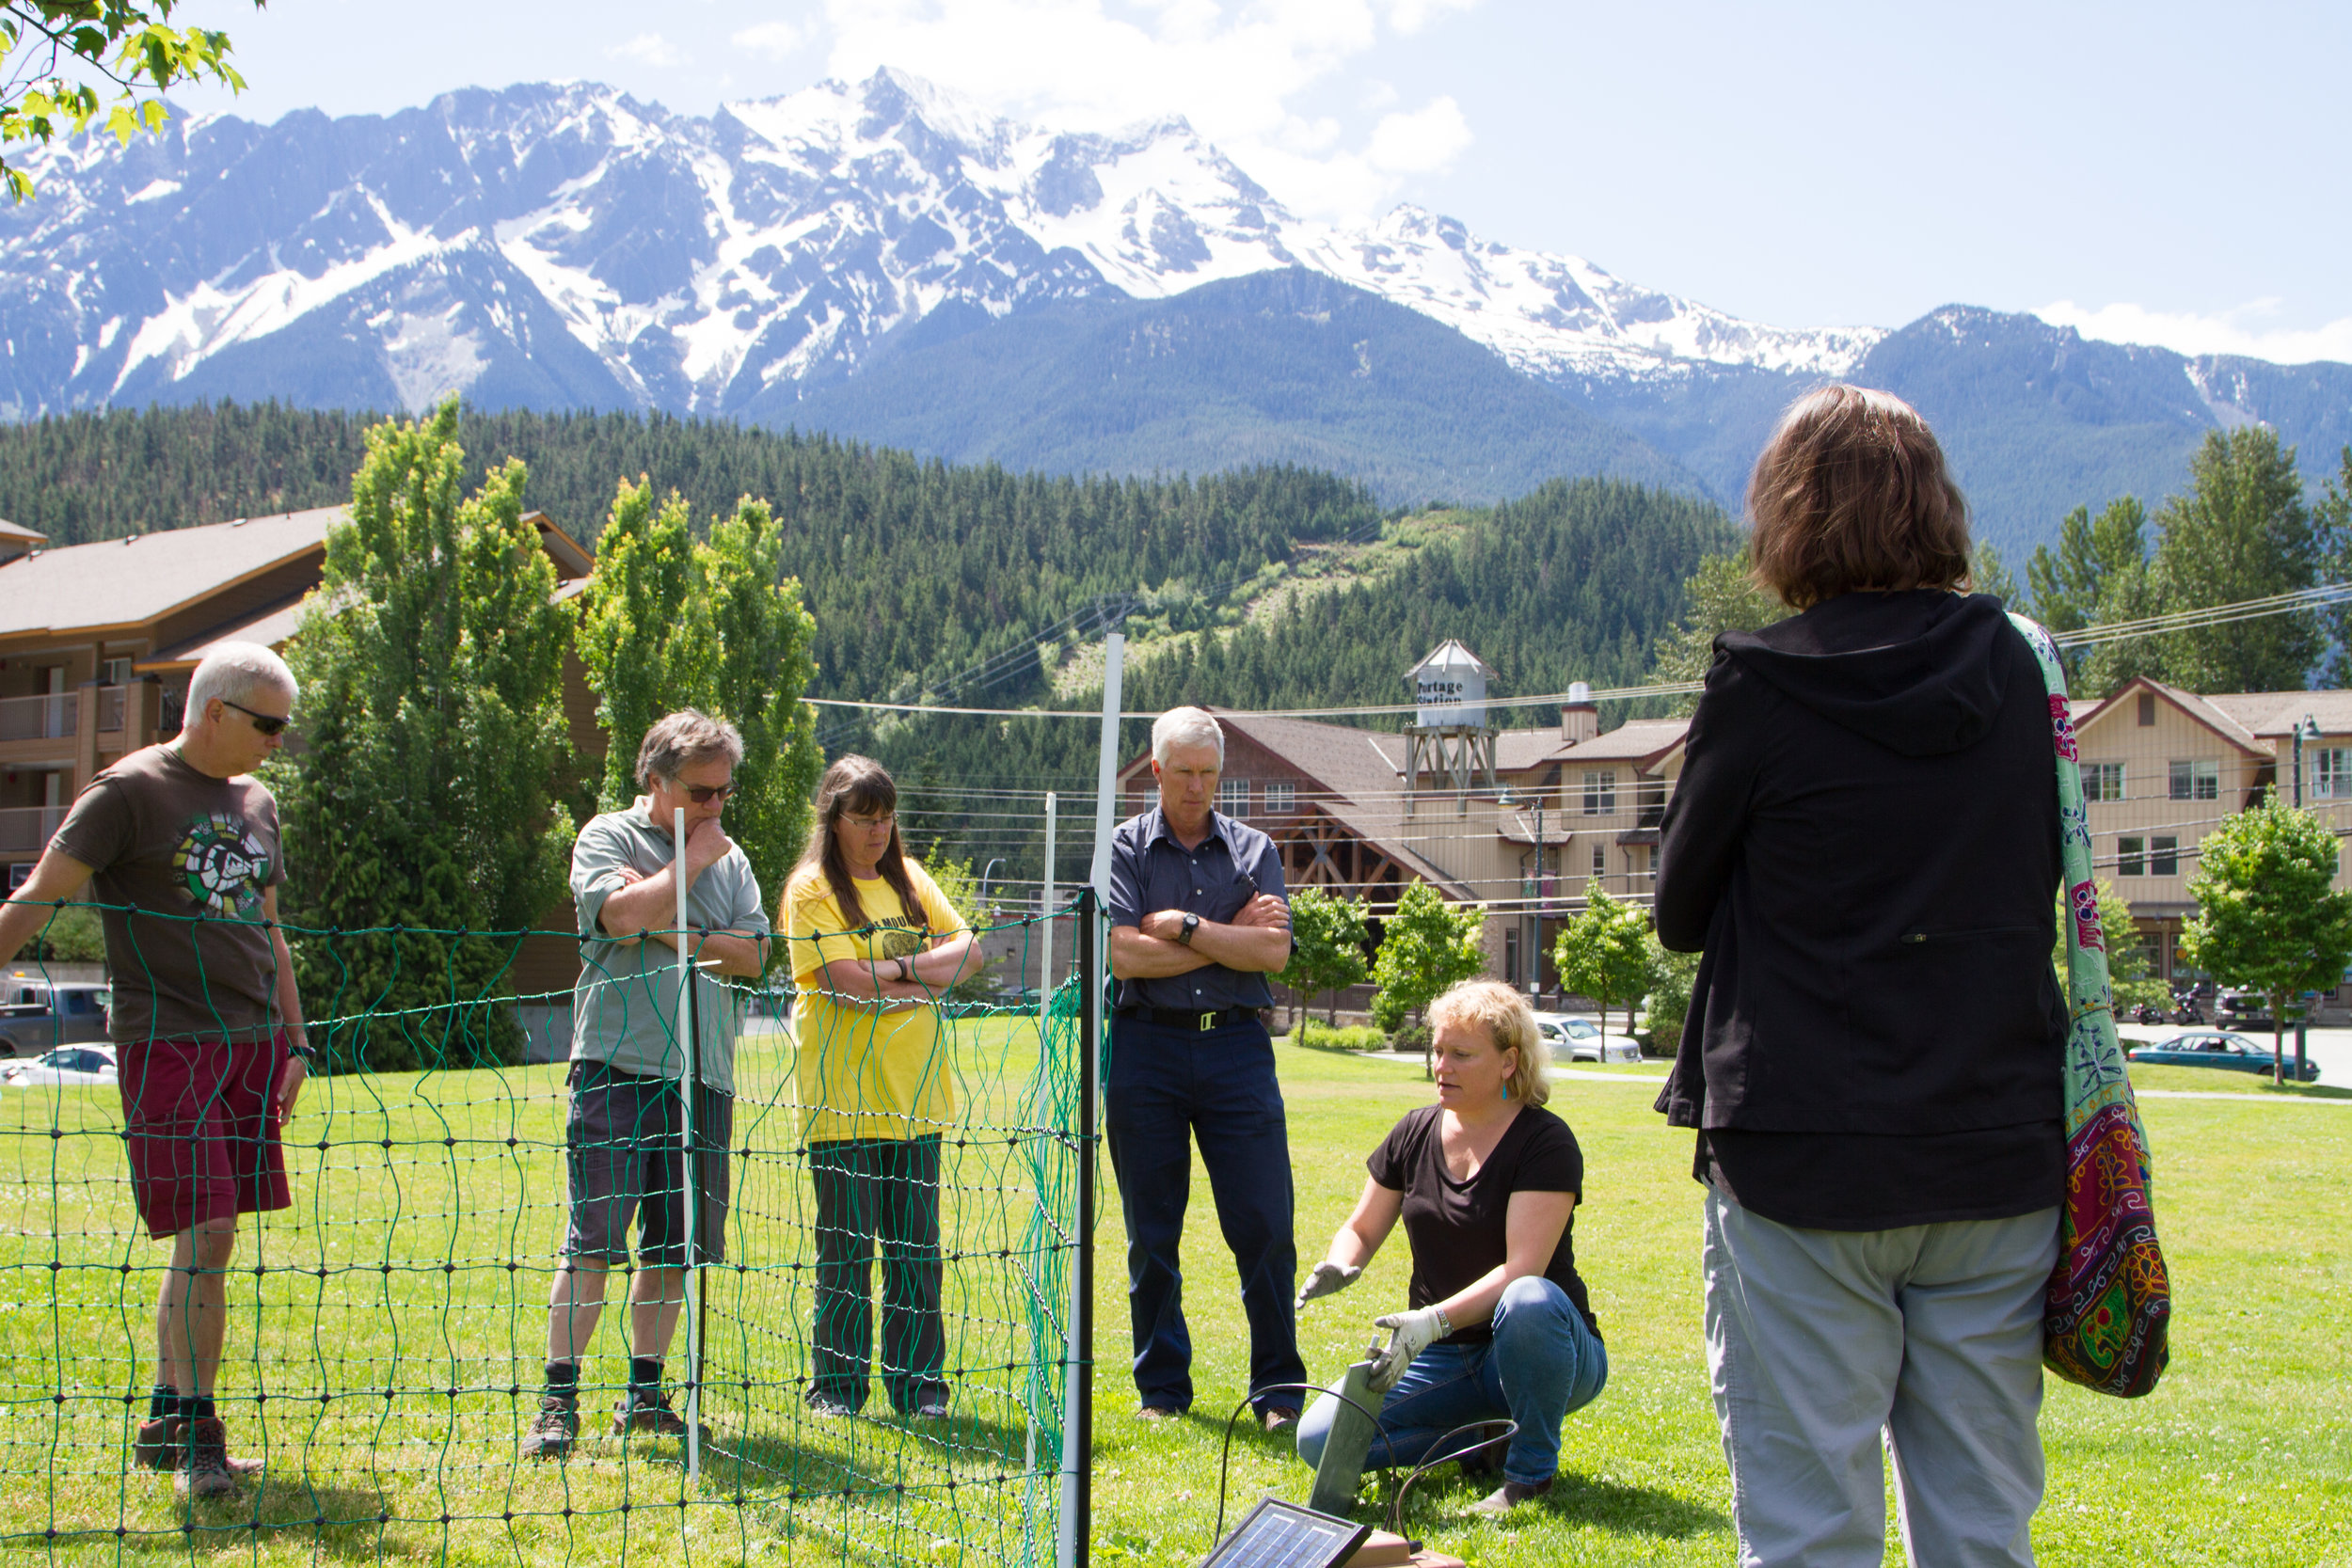 Gillian Sanders (Grizzly Bear Solutions) explains some of the technical elements to set up an electric fence. She is holding a grounding plate, which can be used in various types of climates and ground types.